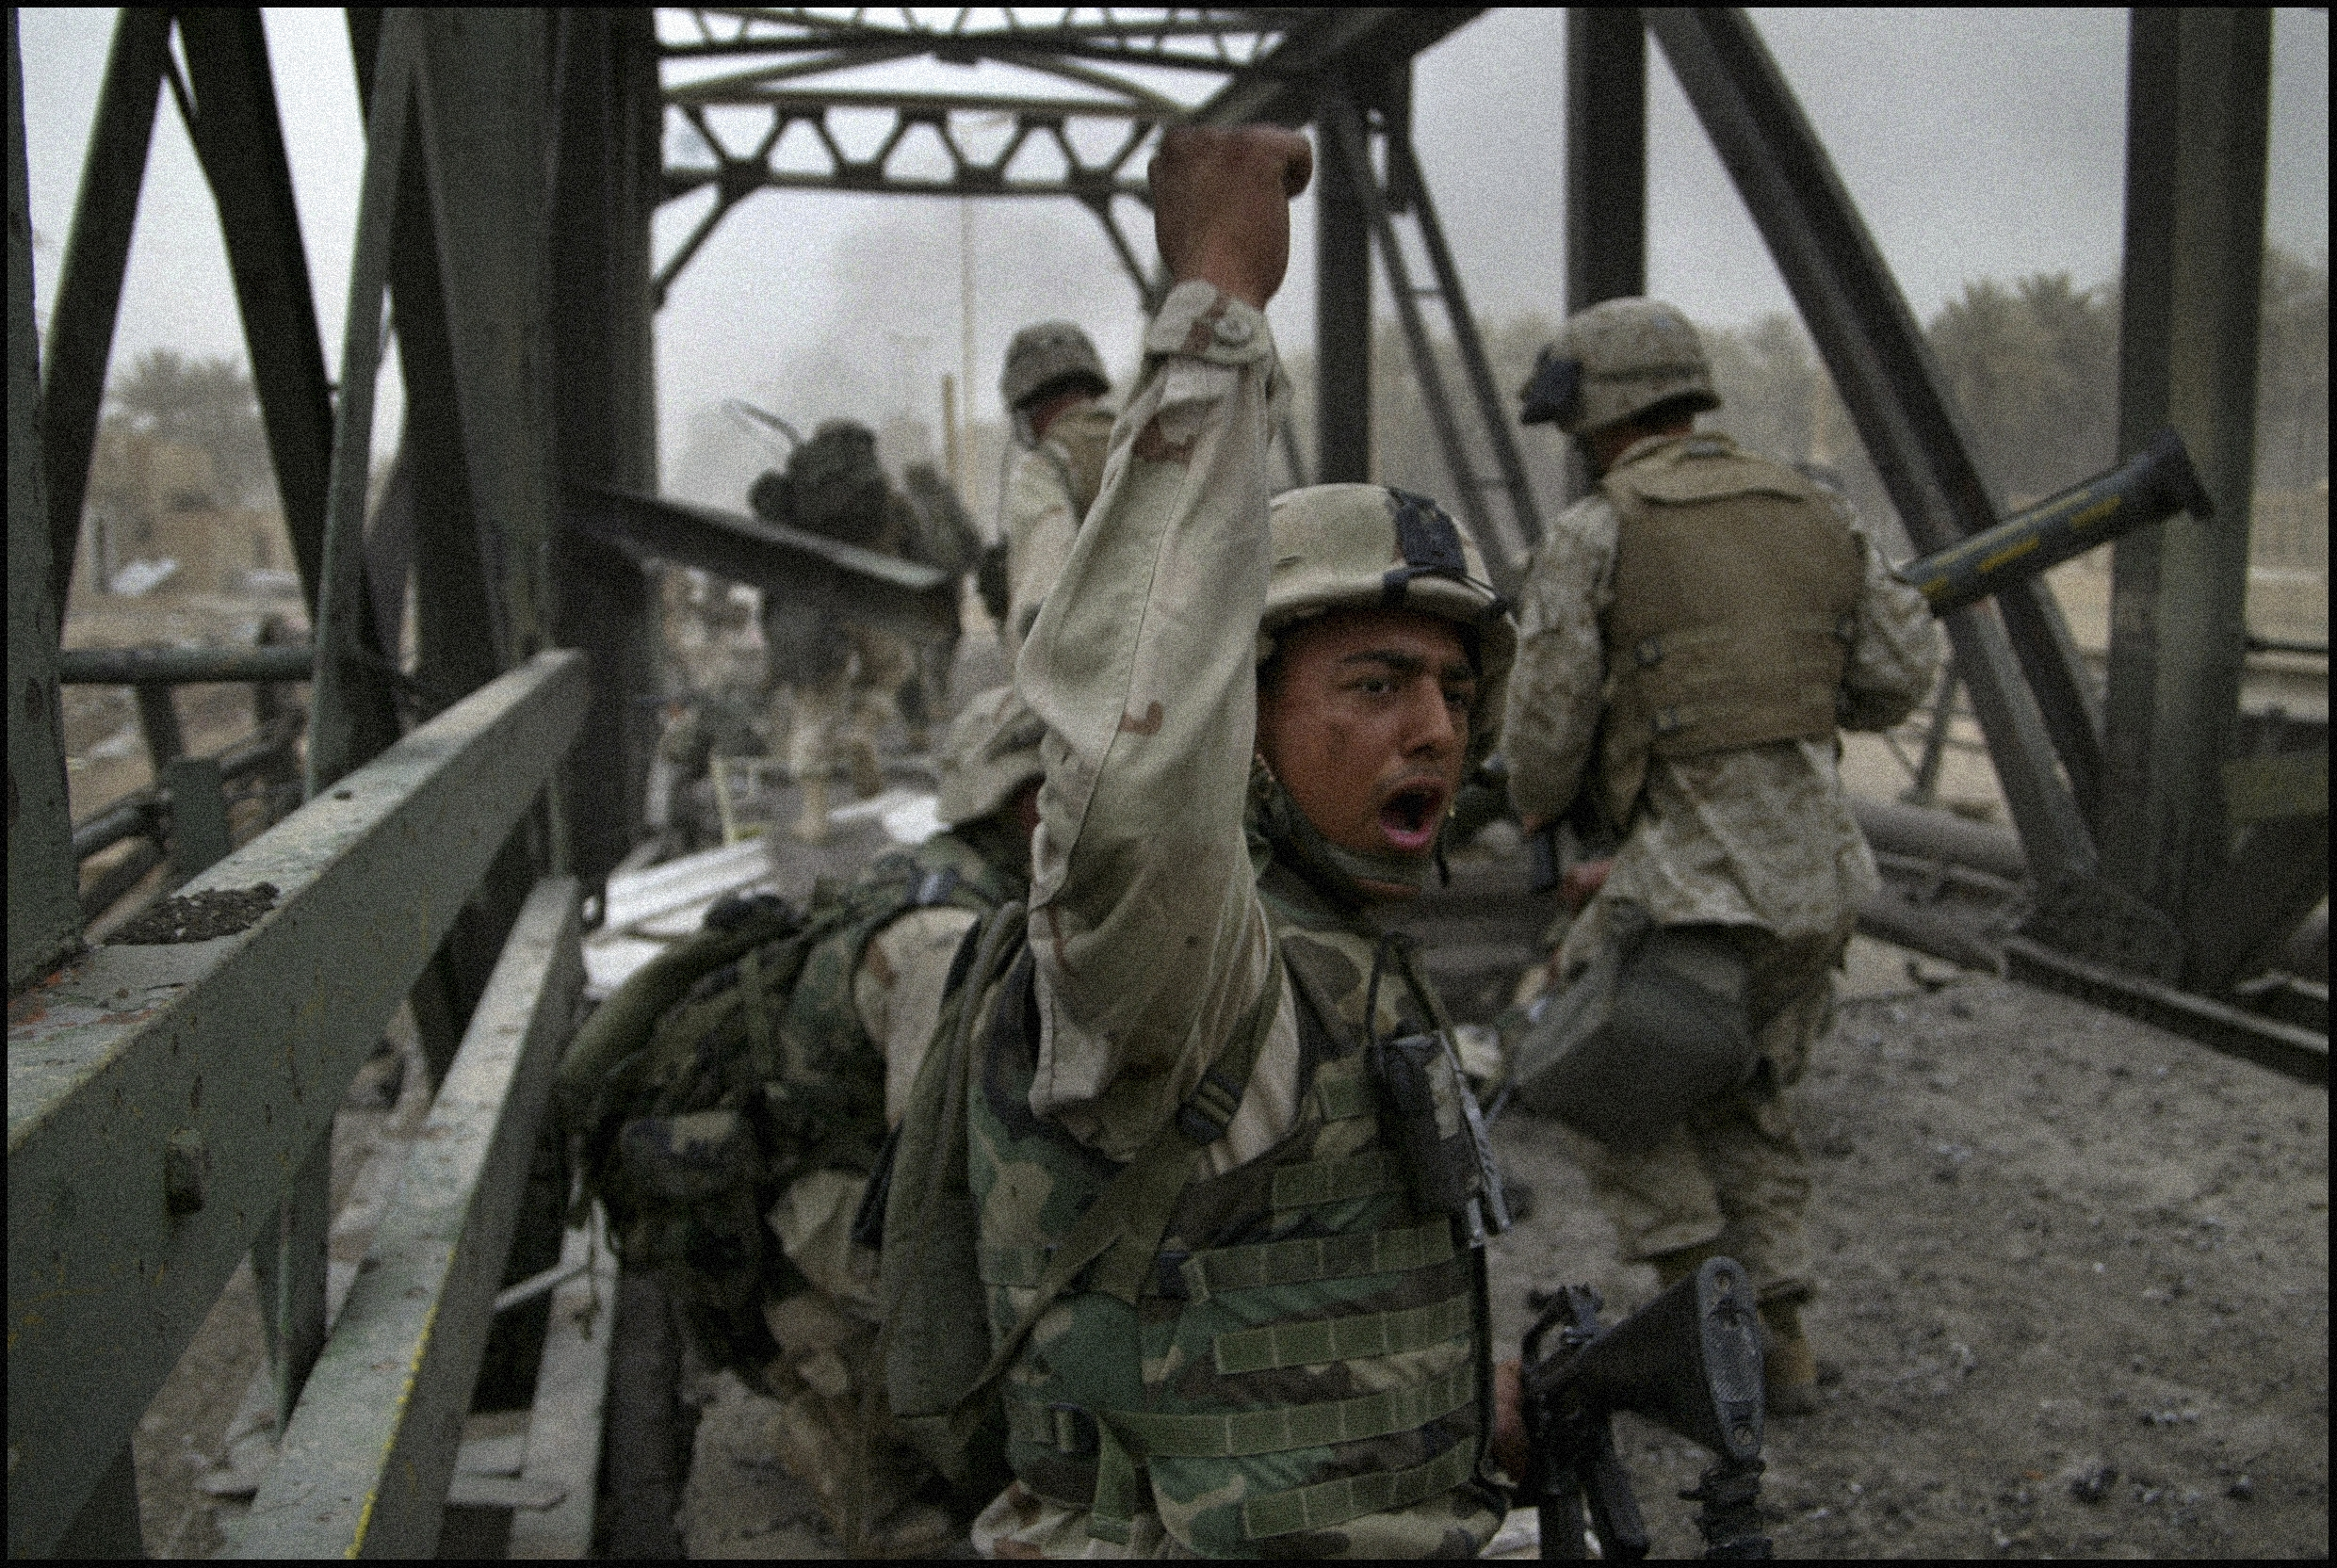 The 3rd Battalion, 4th Marines take Diyala Bridge during the battle for Baghdad. Photo: © Gary Knight